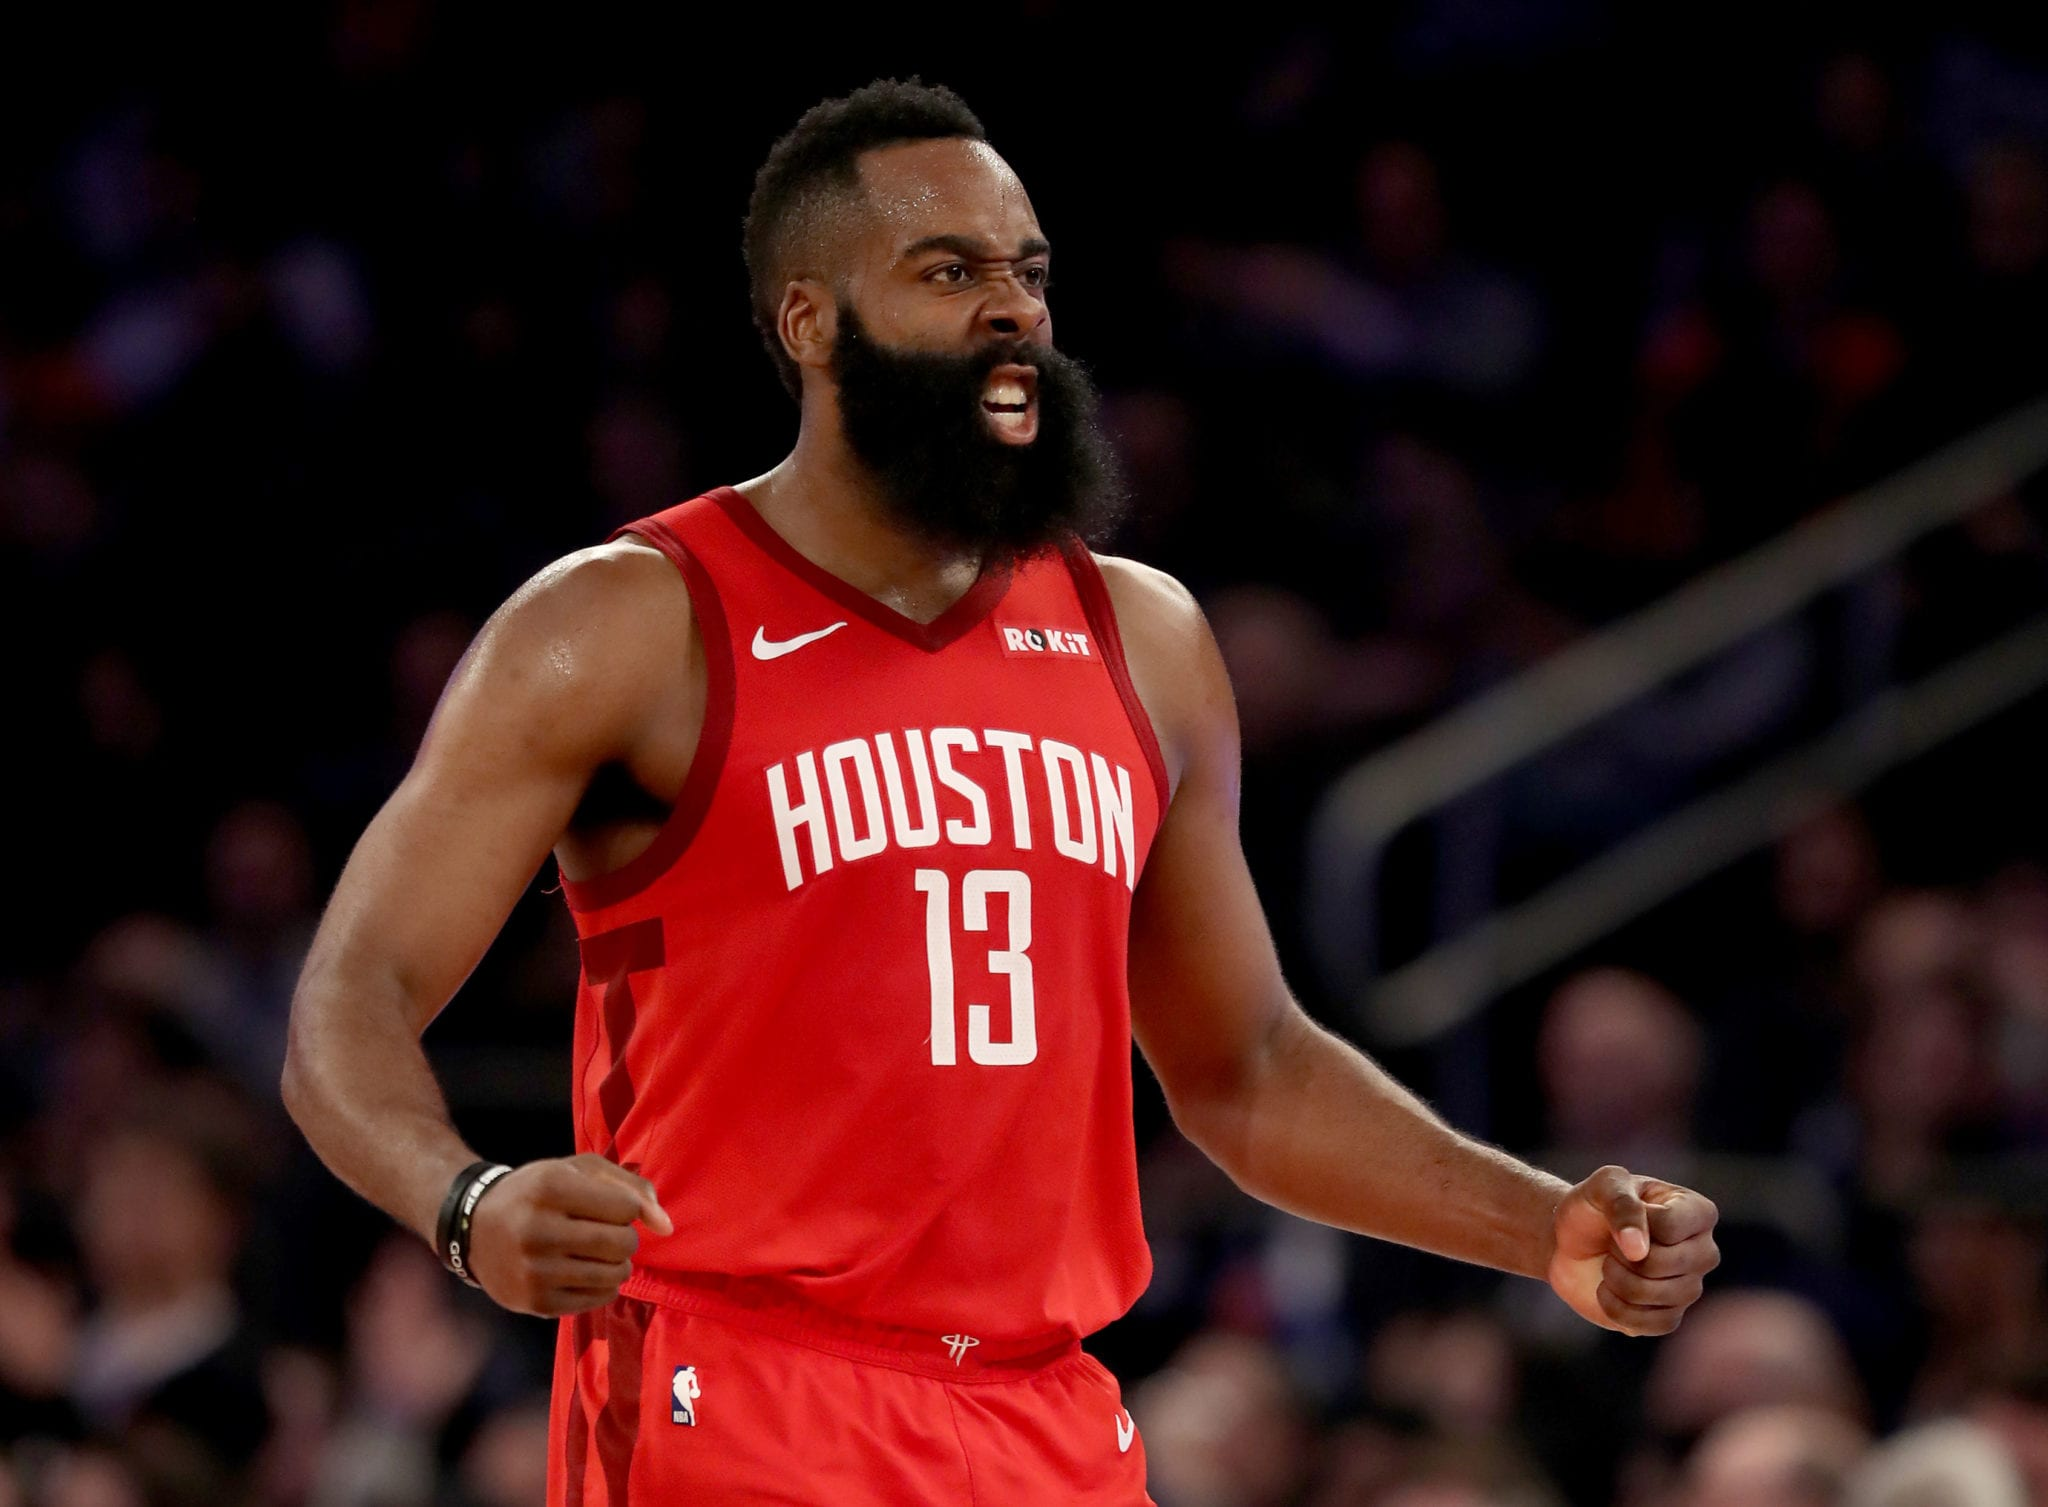 James Harden Committed To The Rockets As Long As He's In Houston